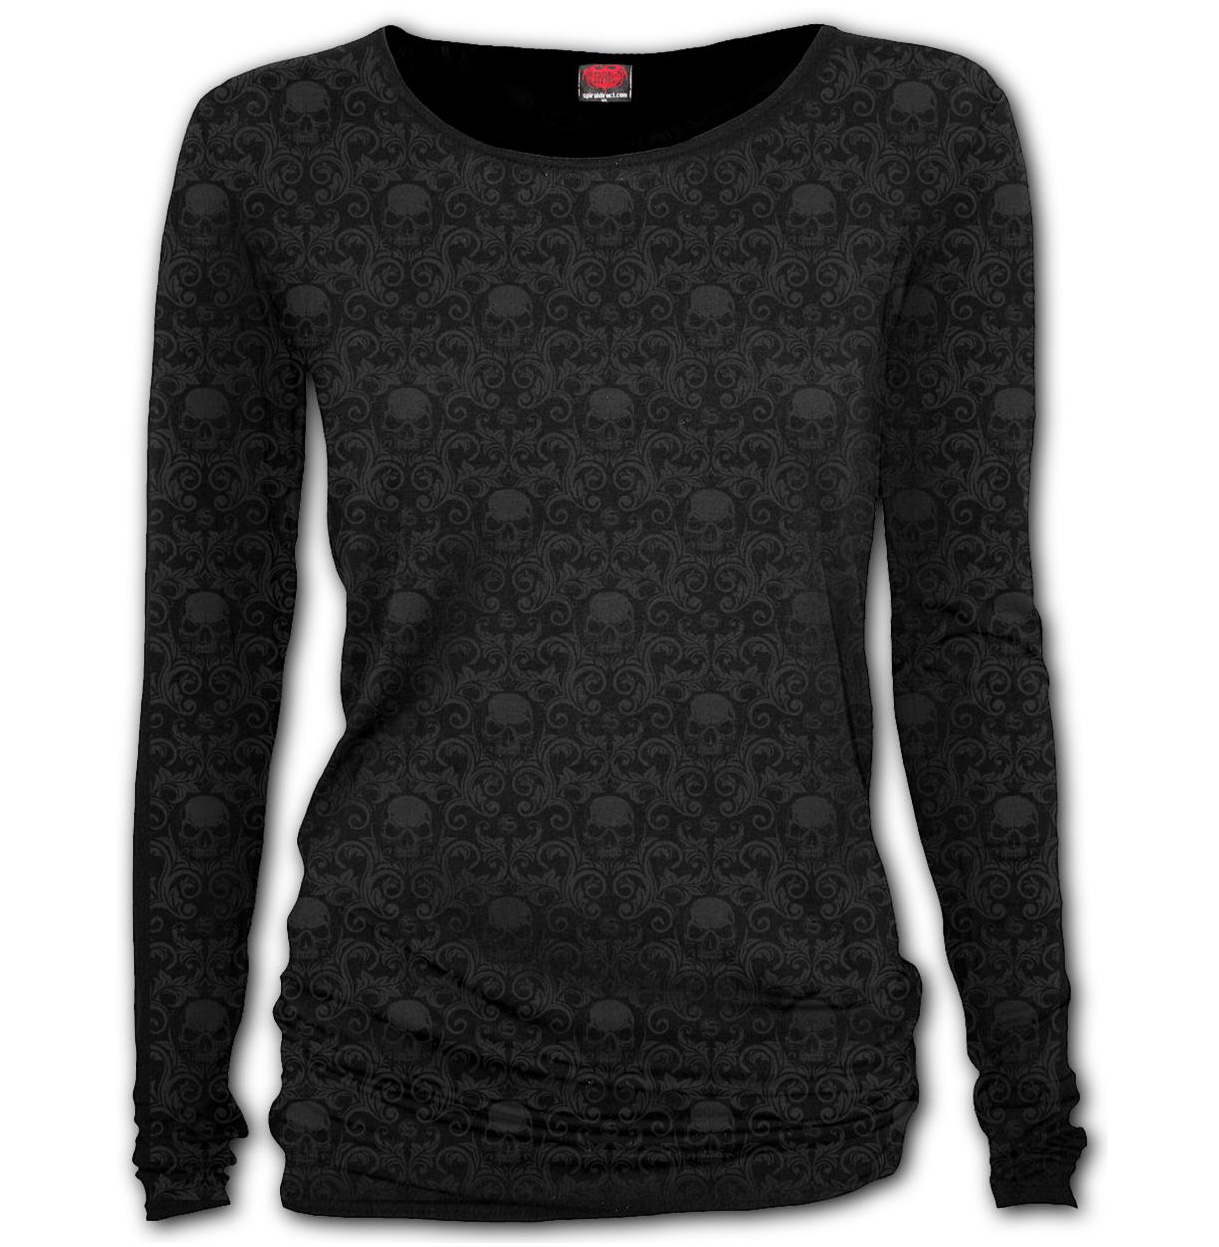 Spiral-Gothic-Elegance-Ladies-Blk-Goth-Scroll-IMPRESSION-L-Sleeve-Top-All-Sizes thumbnail 9